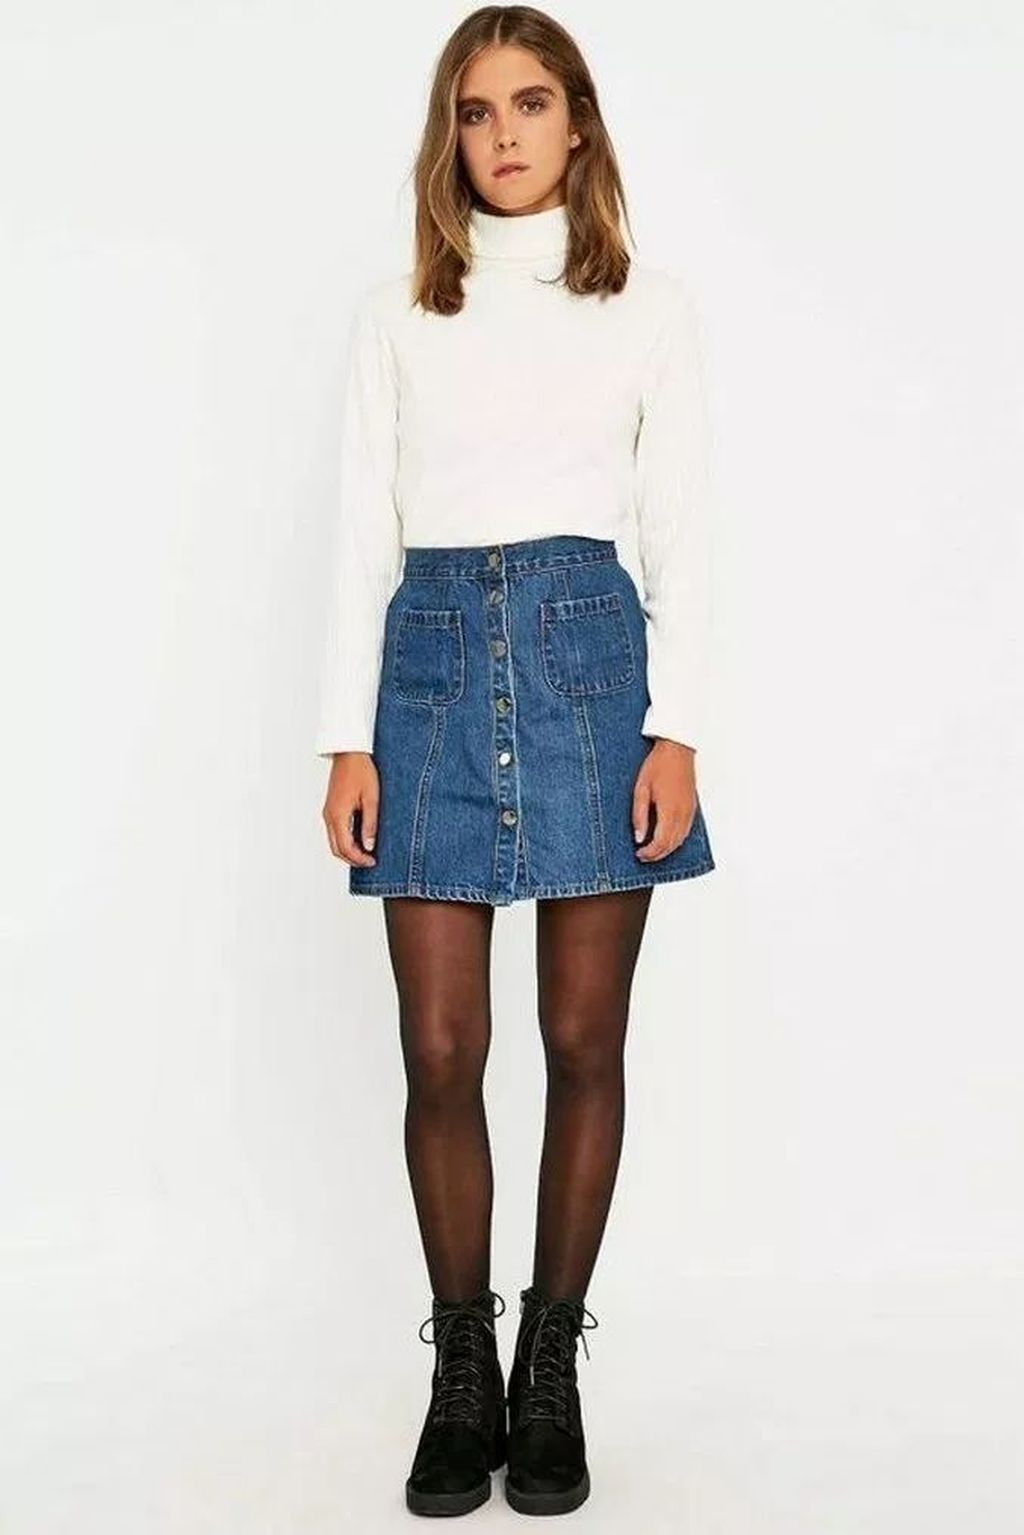 43 Elegant Denim Skirts Outfits Ideas